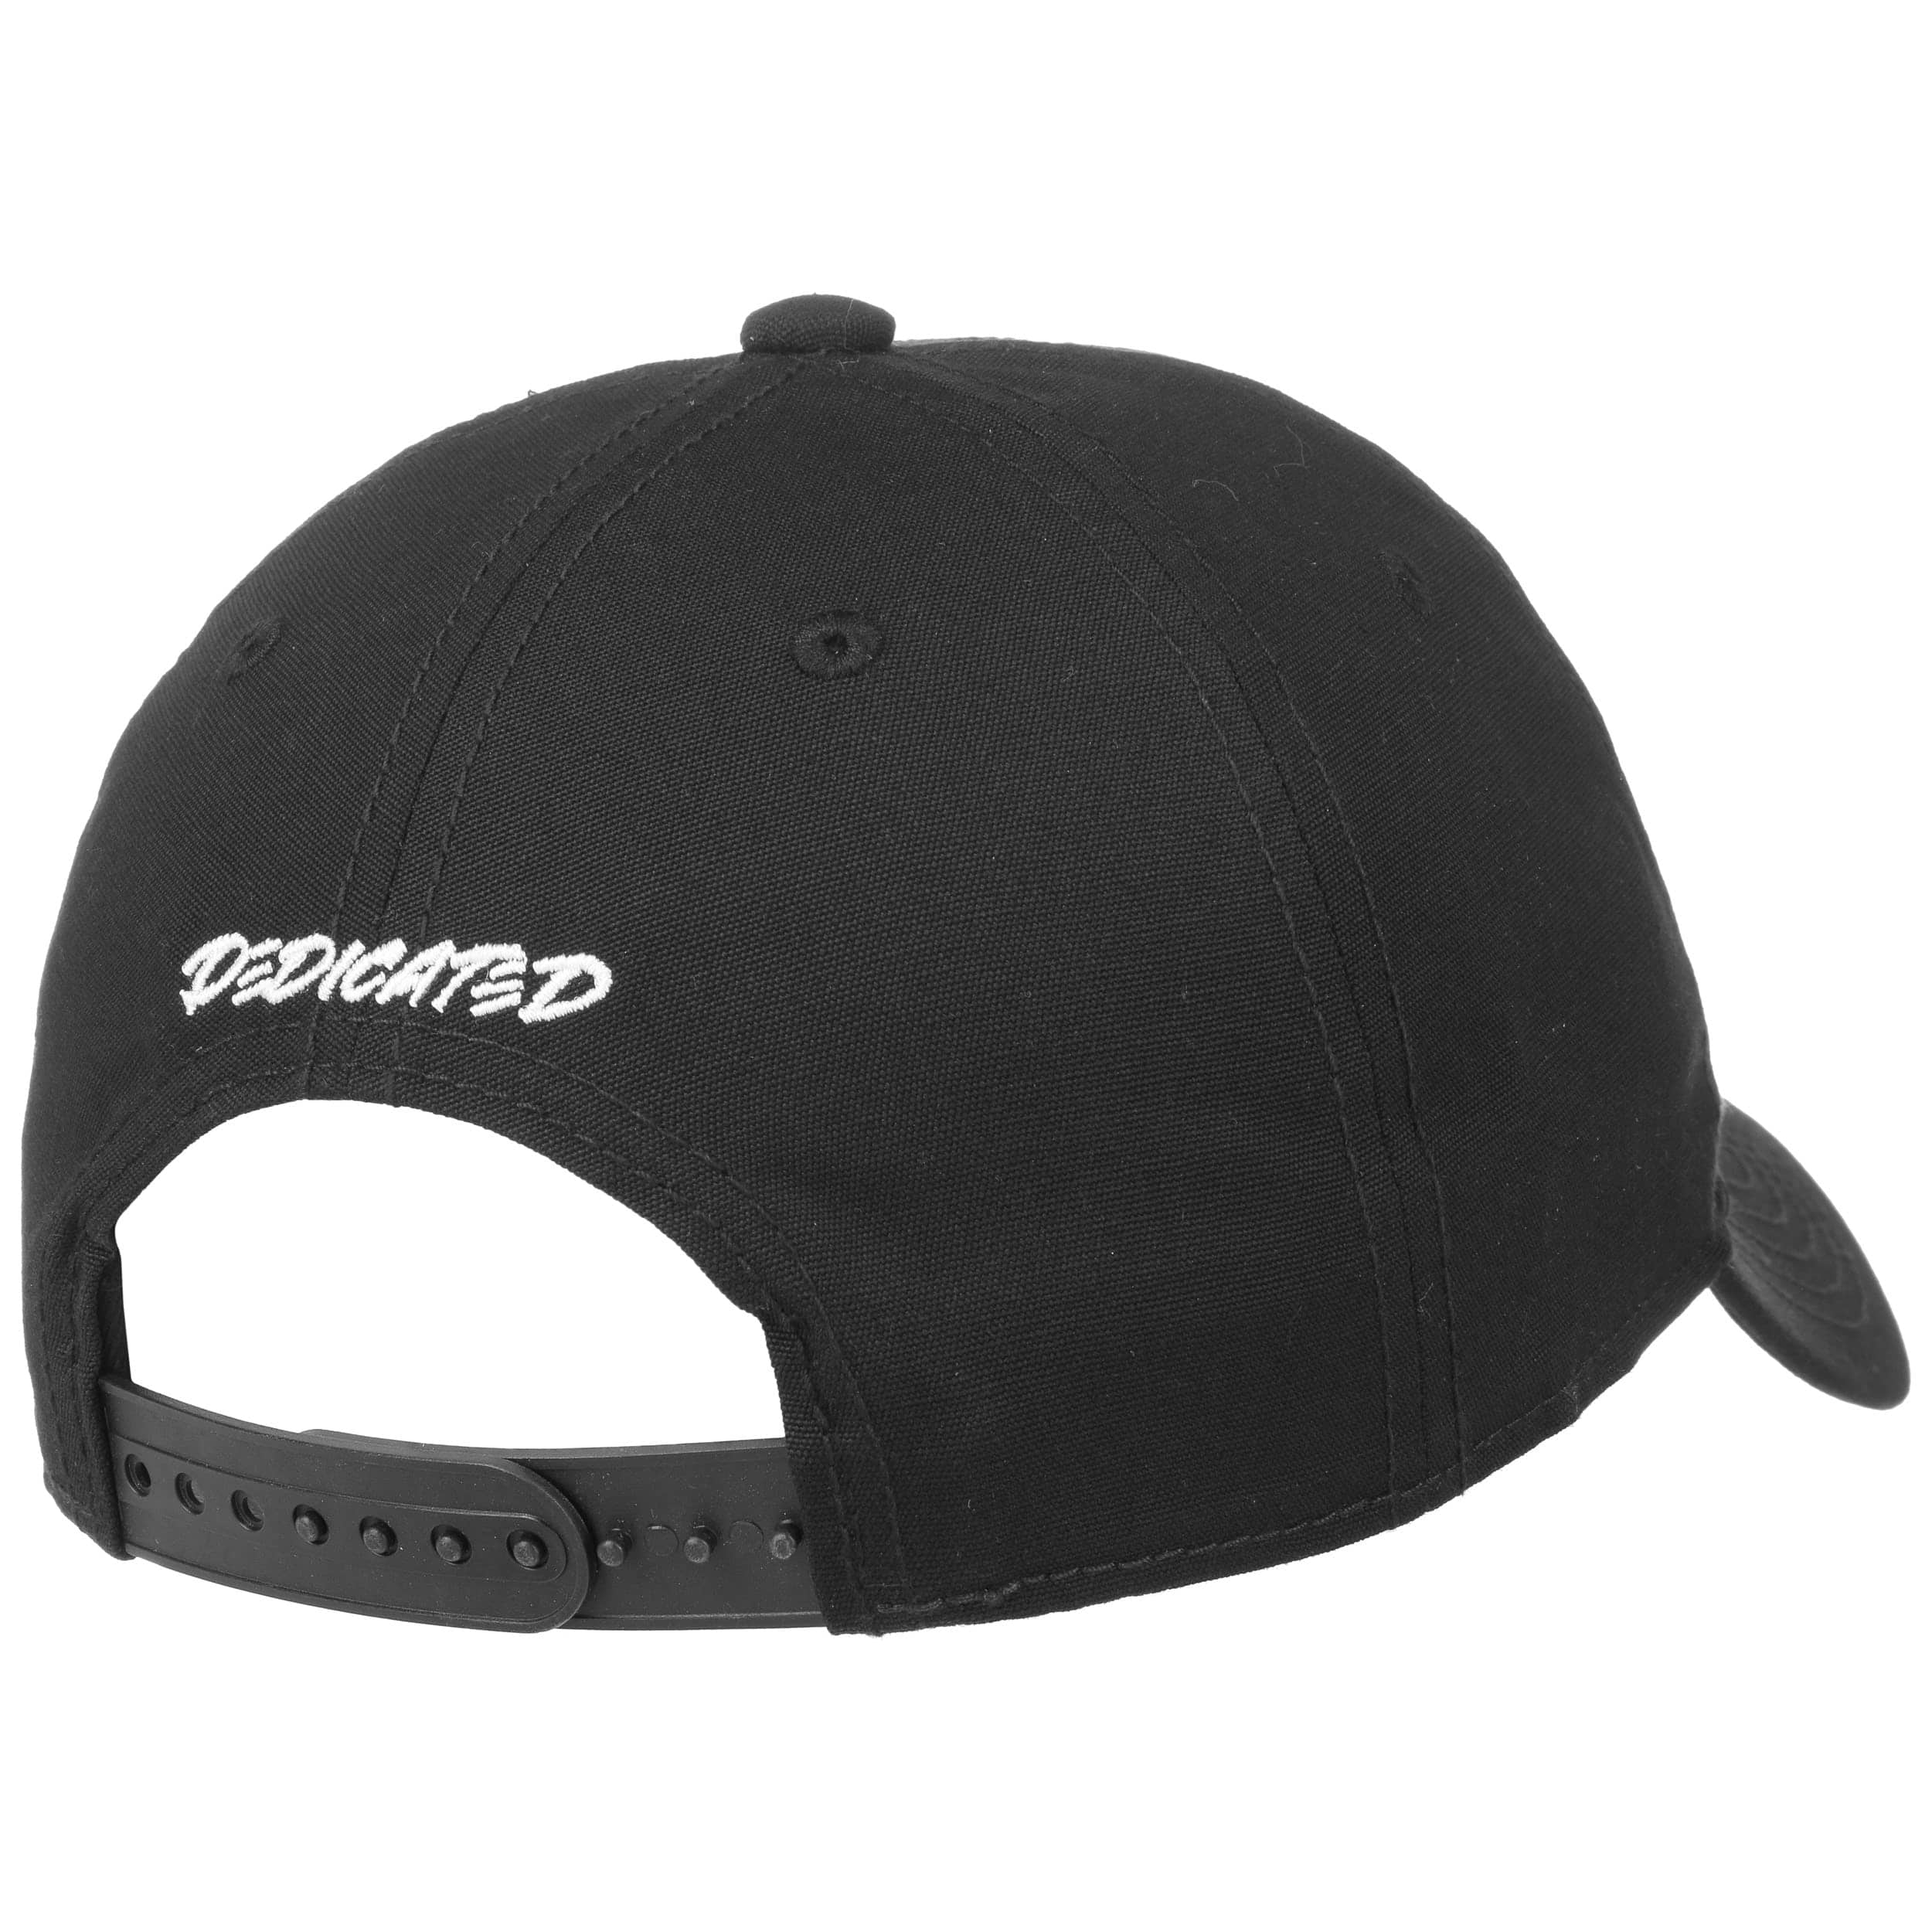 Peace sign strapback cap by dedicated gbp gt hats